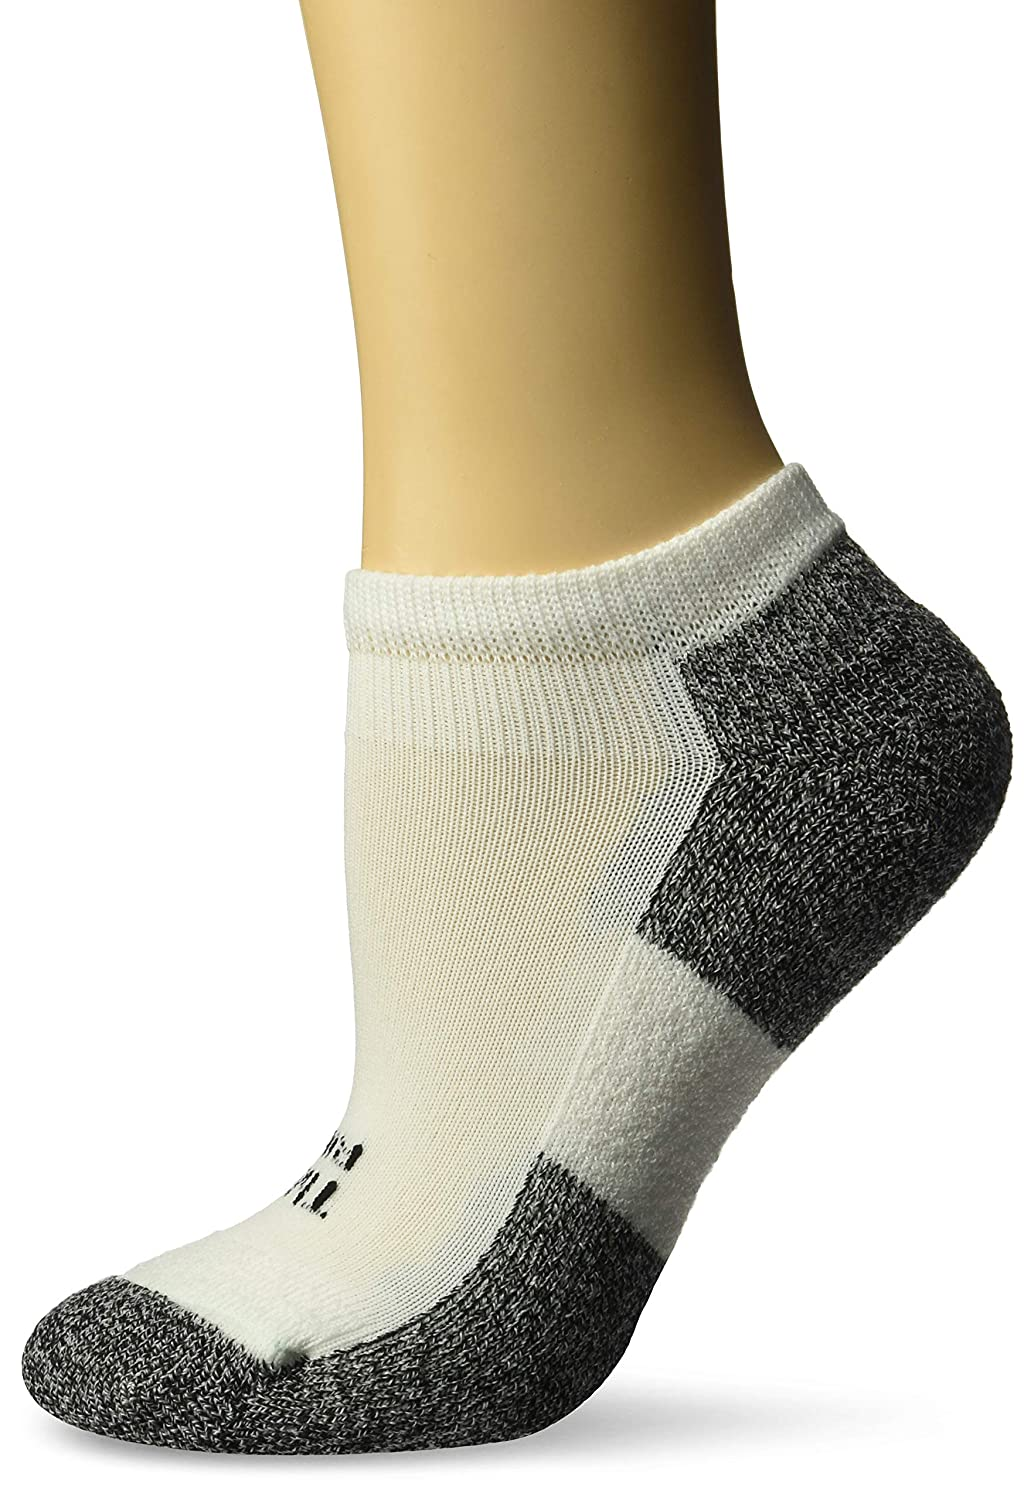 Thorlo Lite Padded No Show Femme Chaussettes